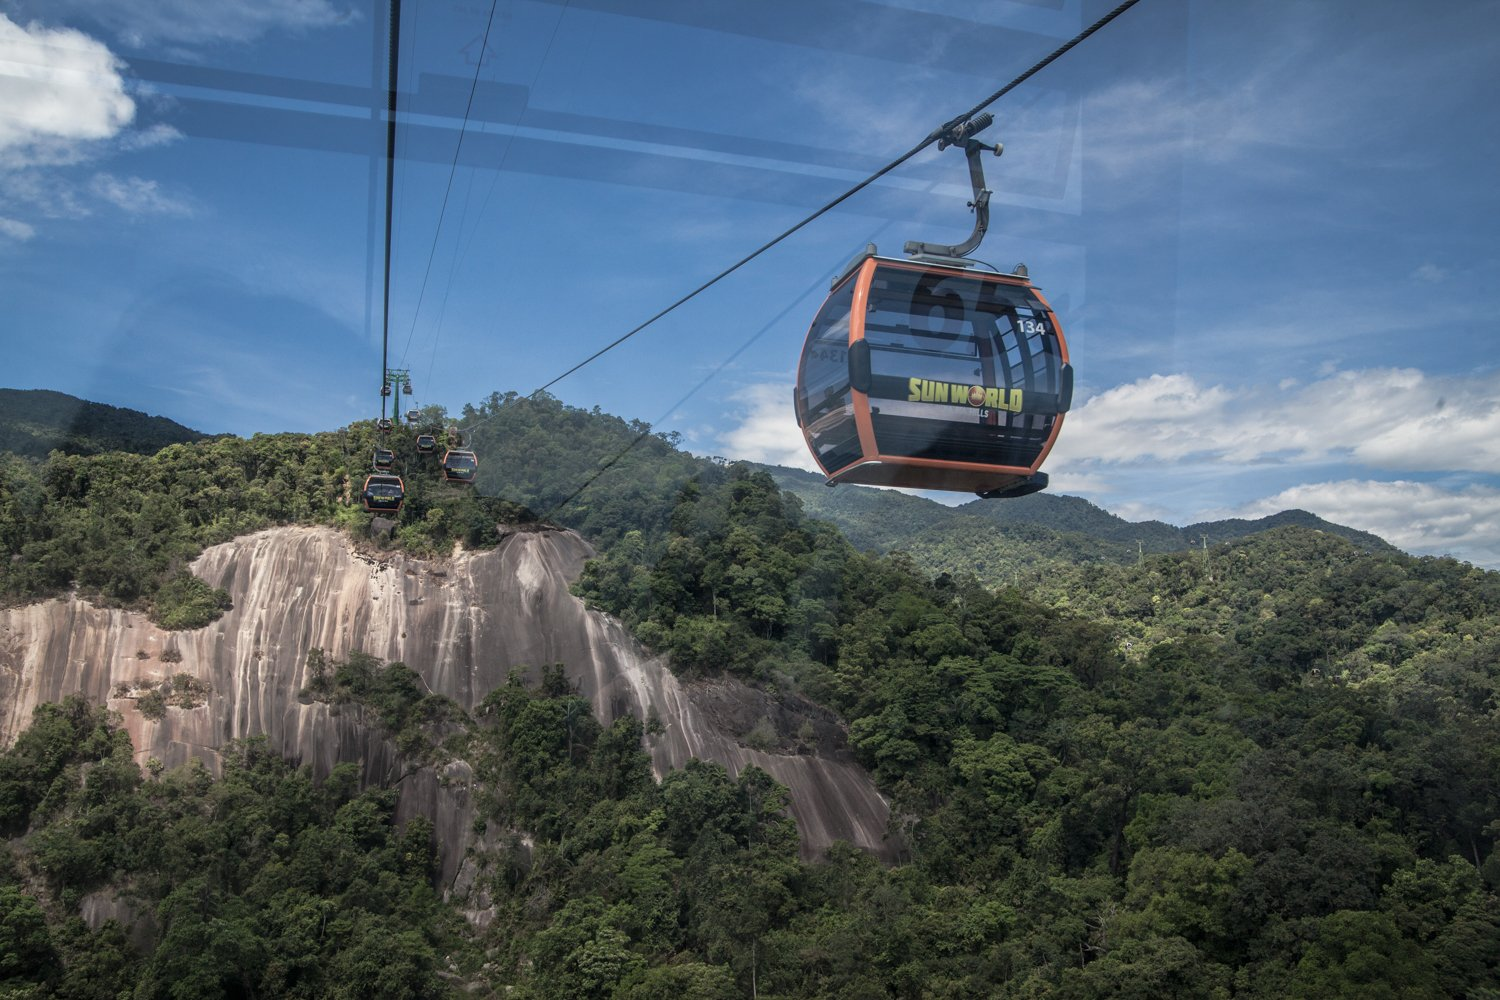 Taking the Cable Car to get to Ba Na Hills